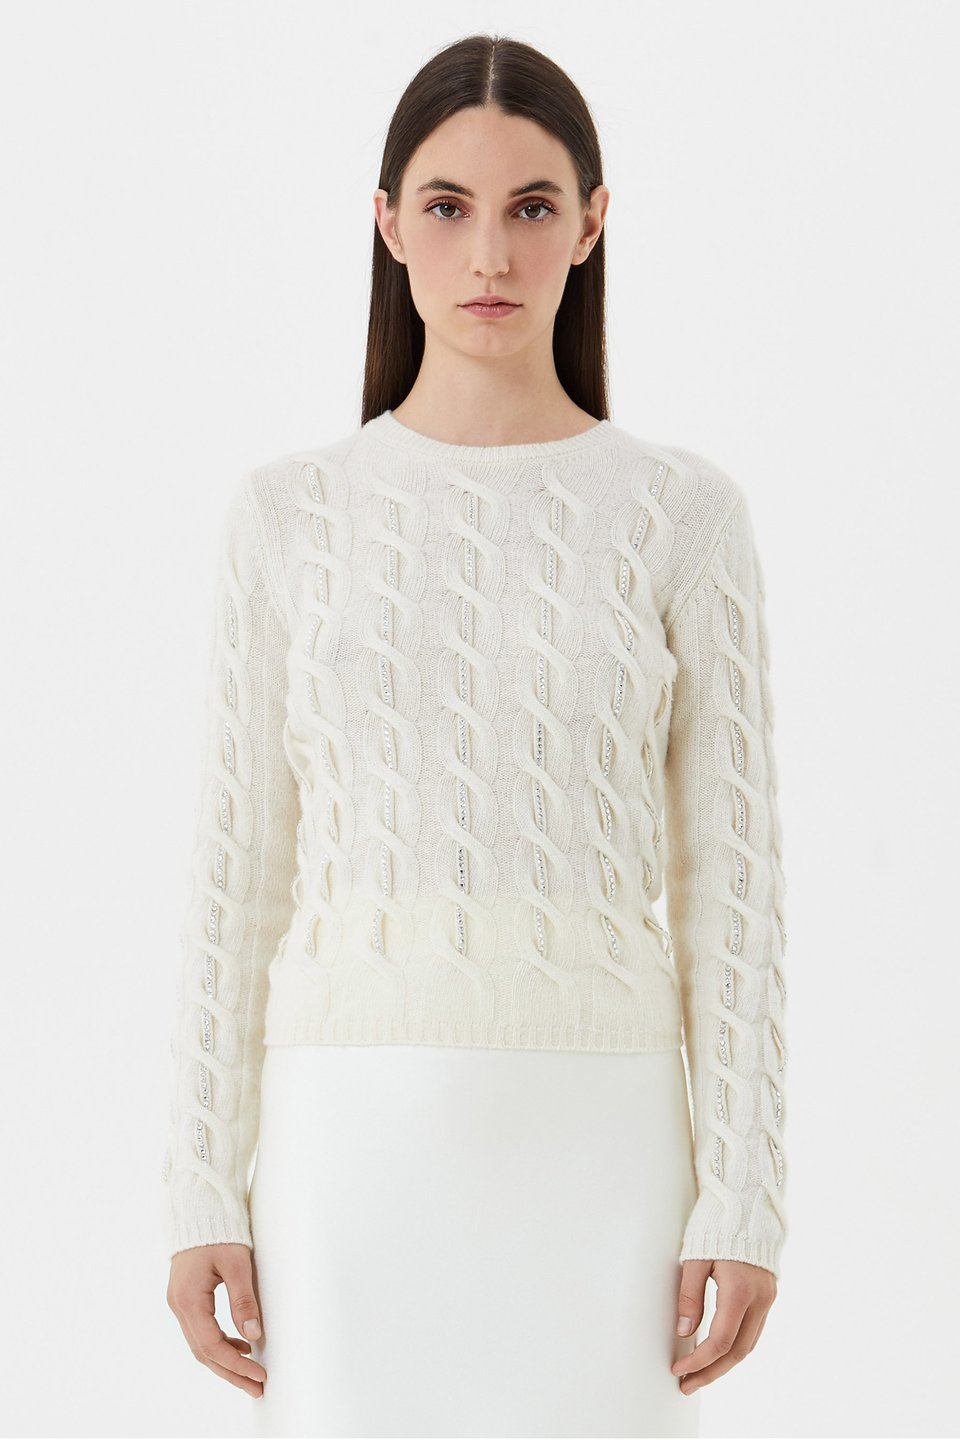 Wool jumper with rhinestone embroidery